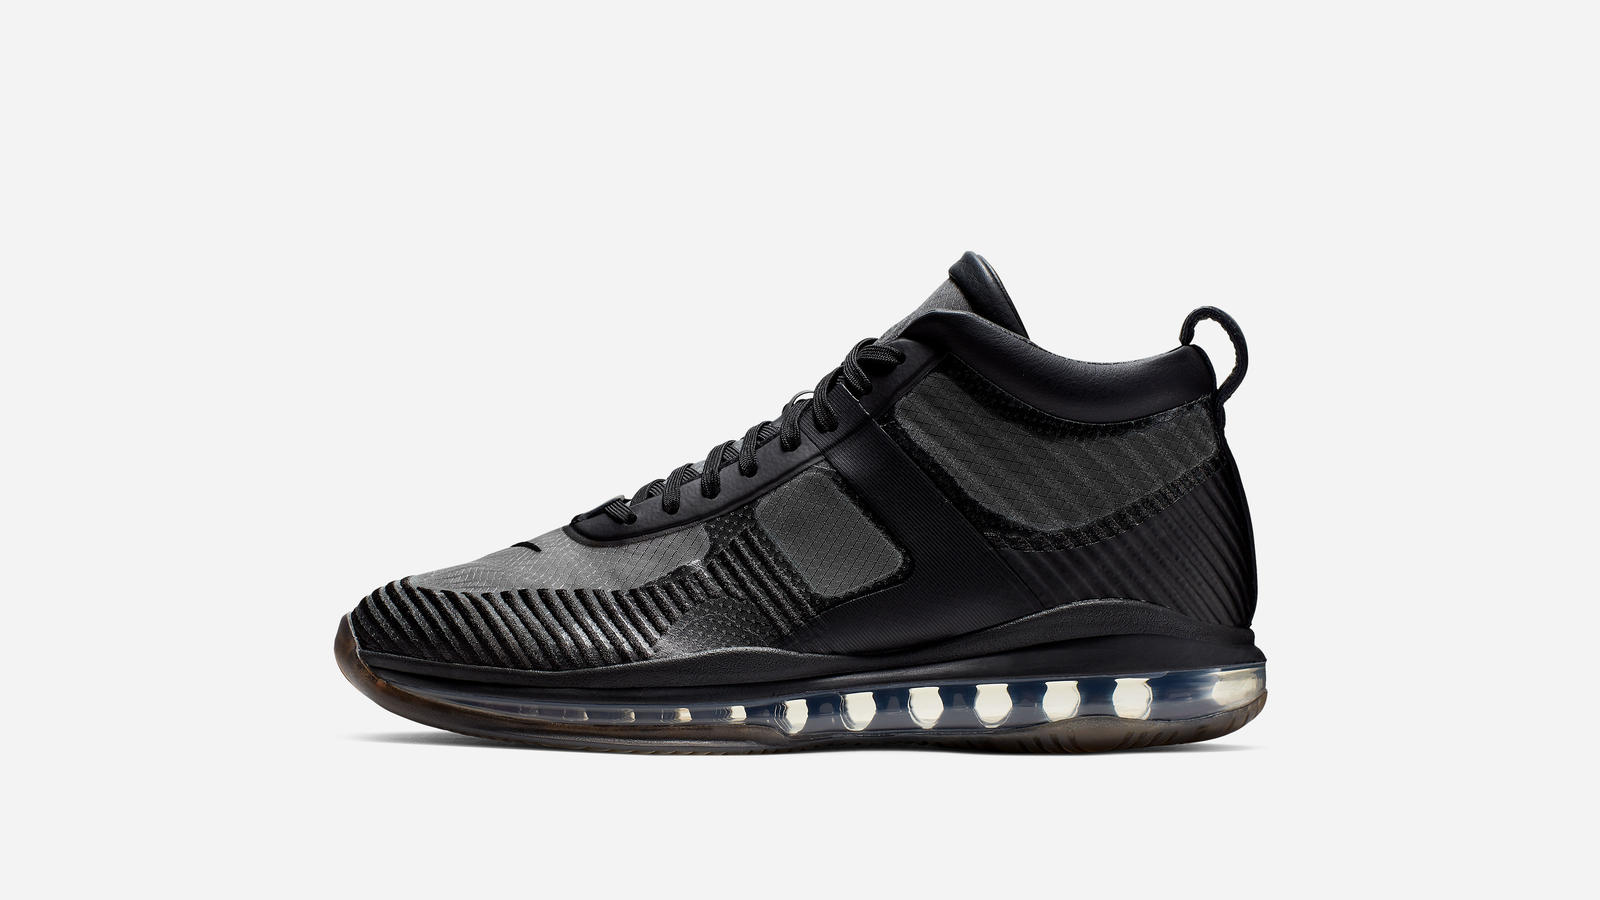 LeBron James x John Elliot Icon QS (Black) 2